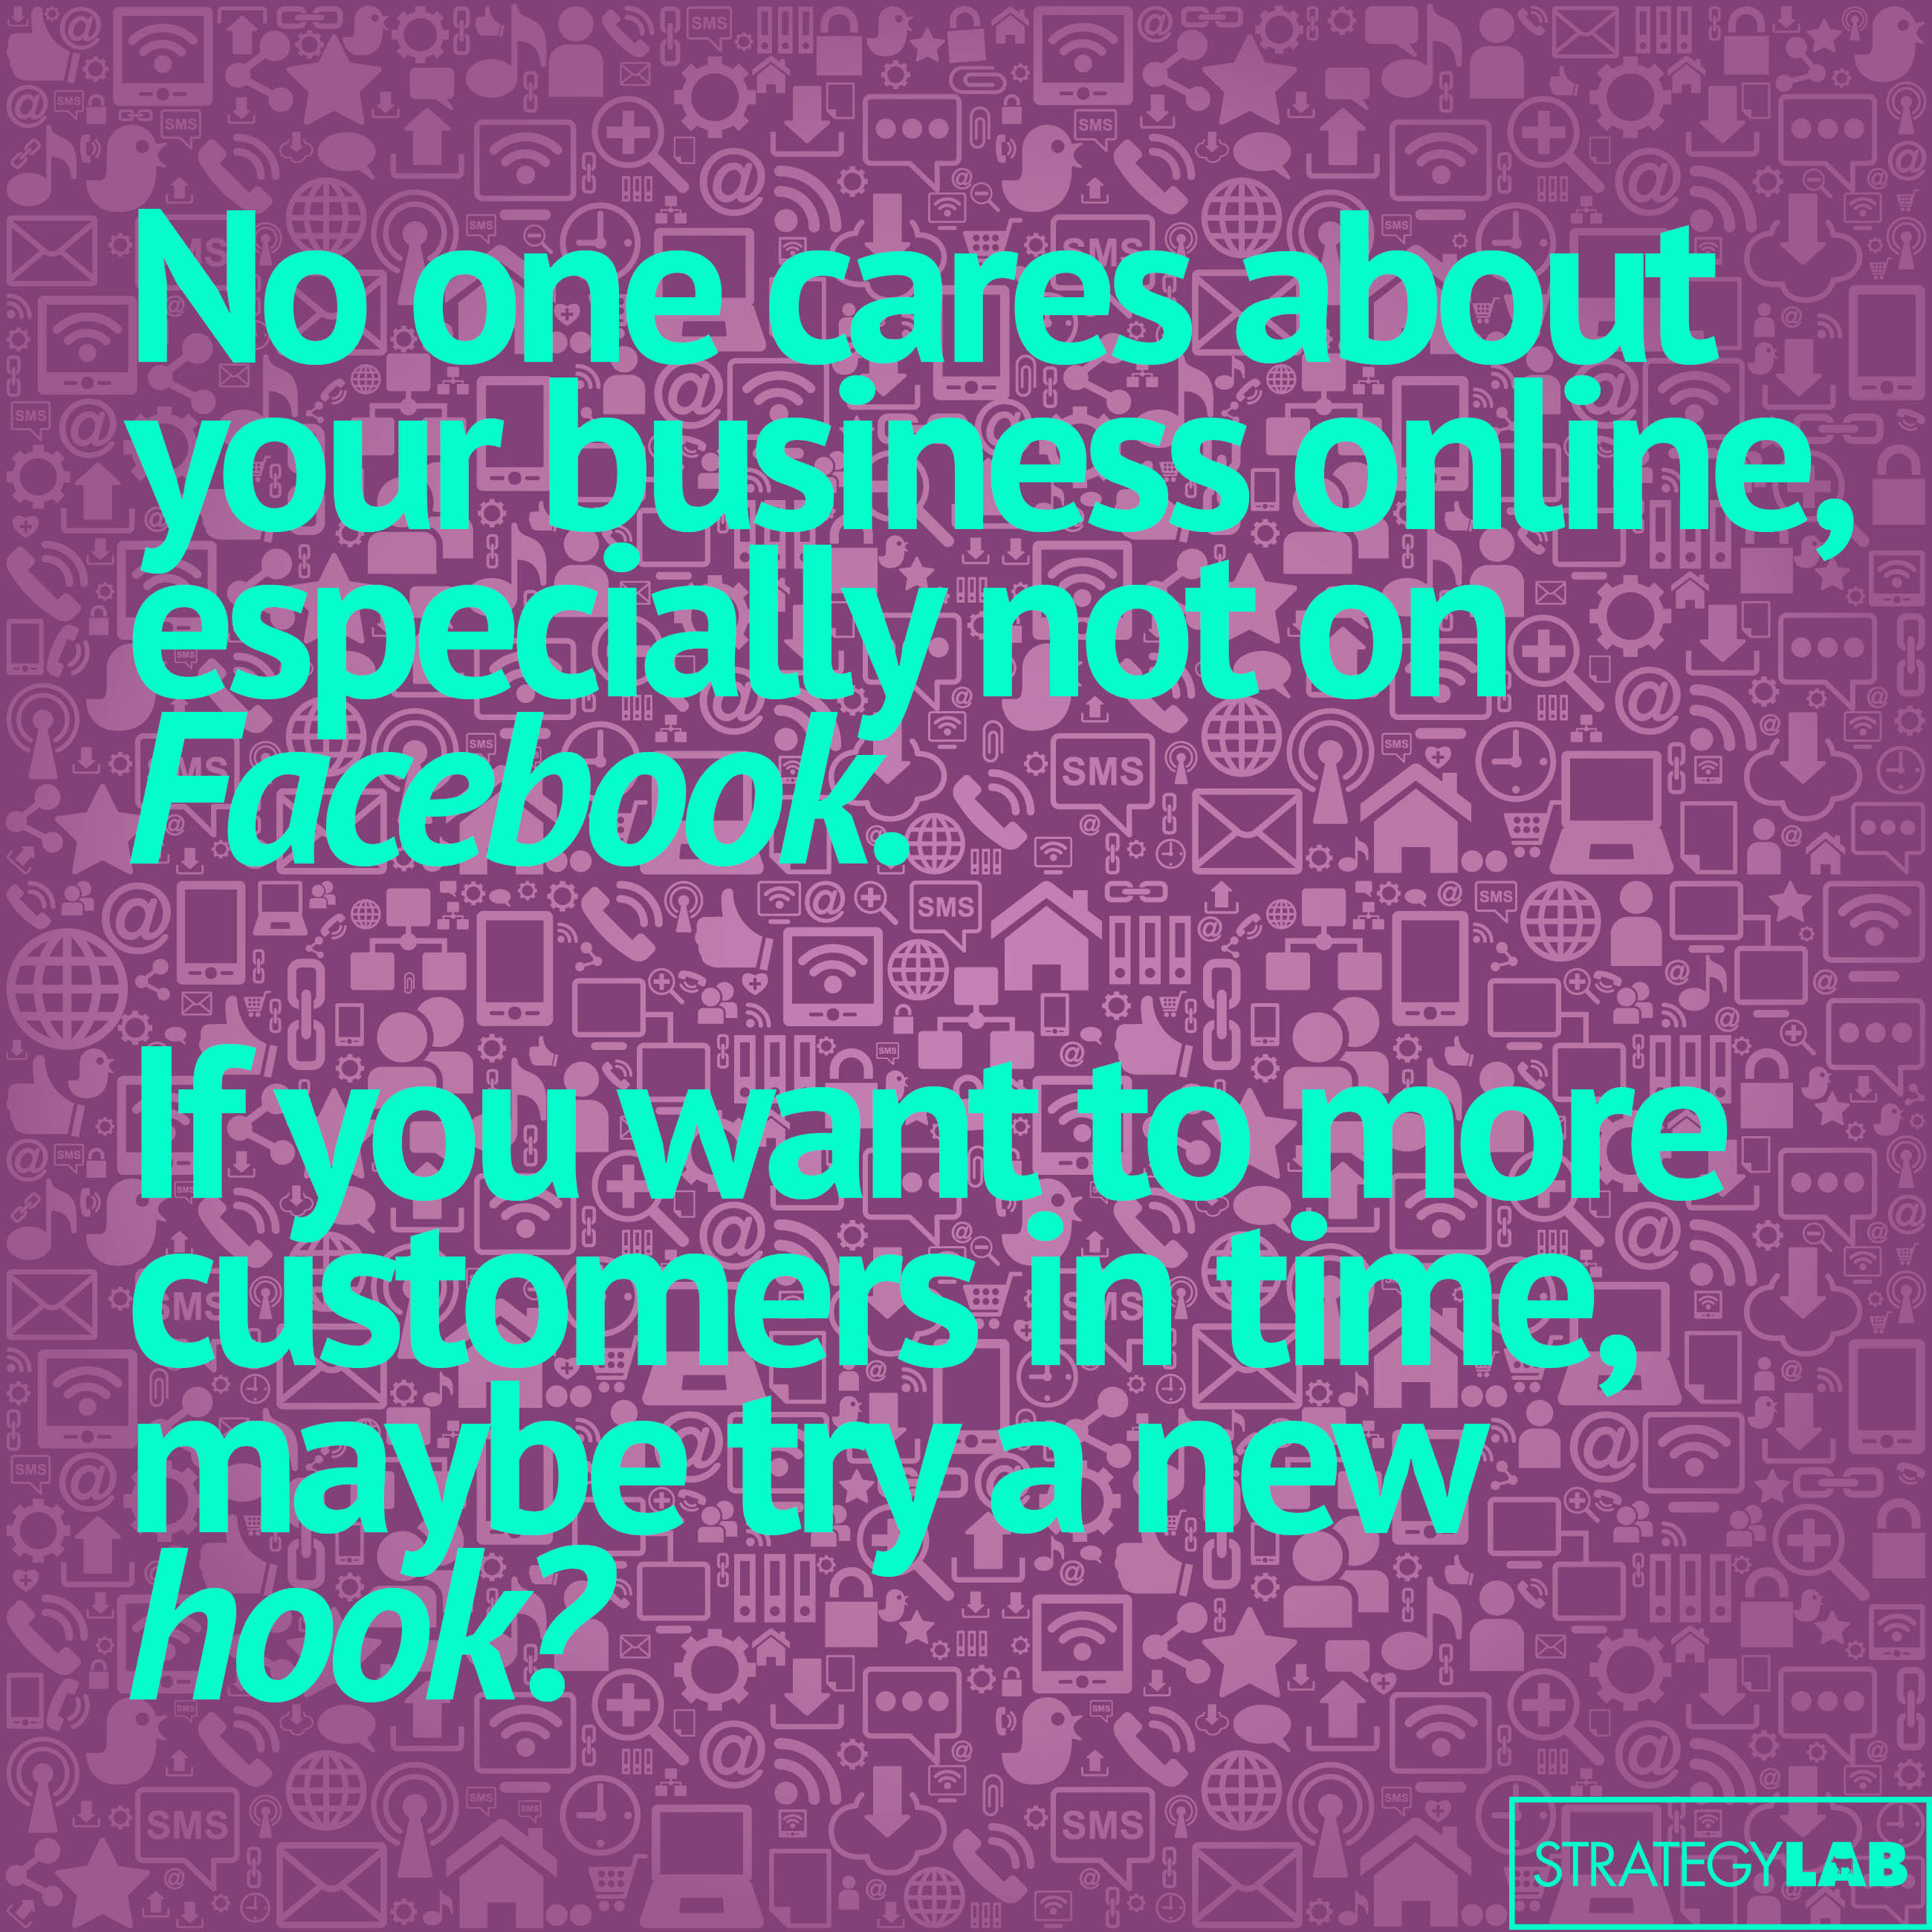 No one cares about your business online, especially not on Facebook